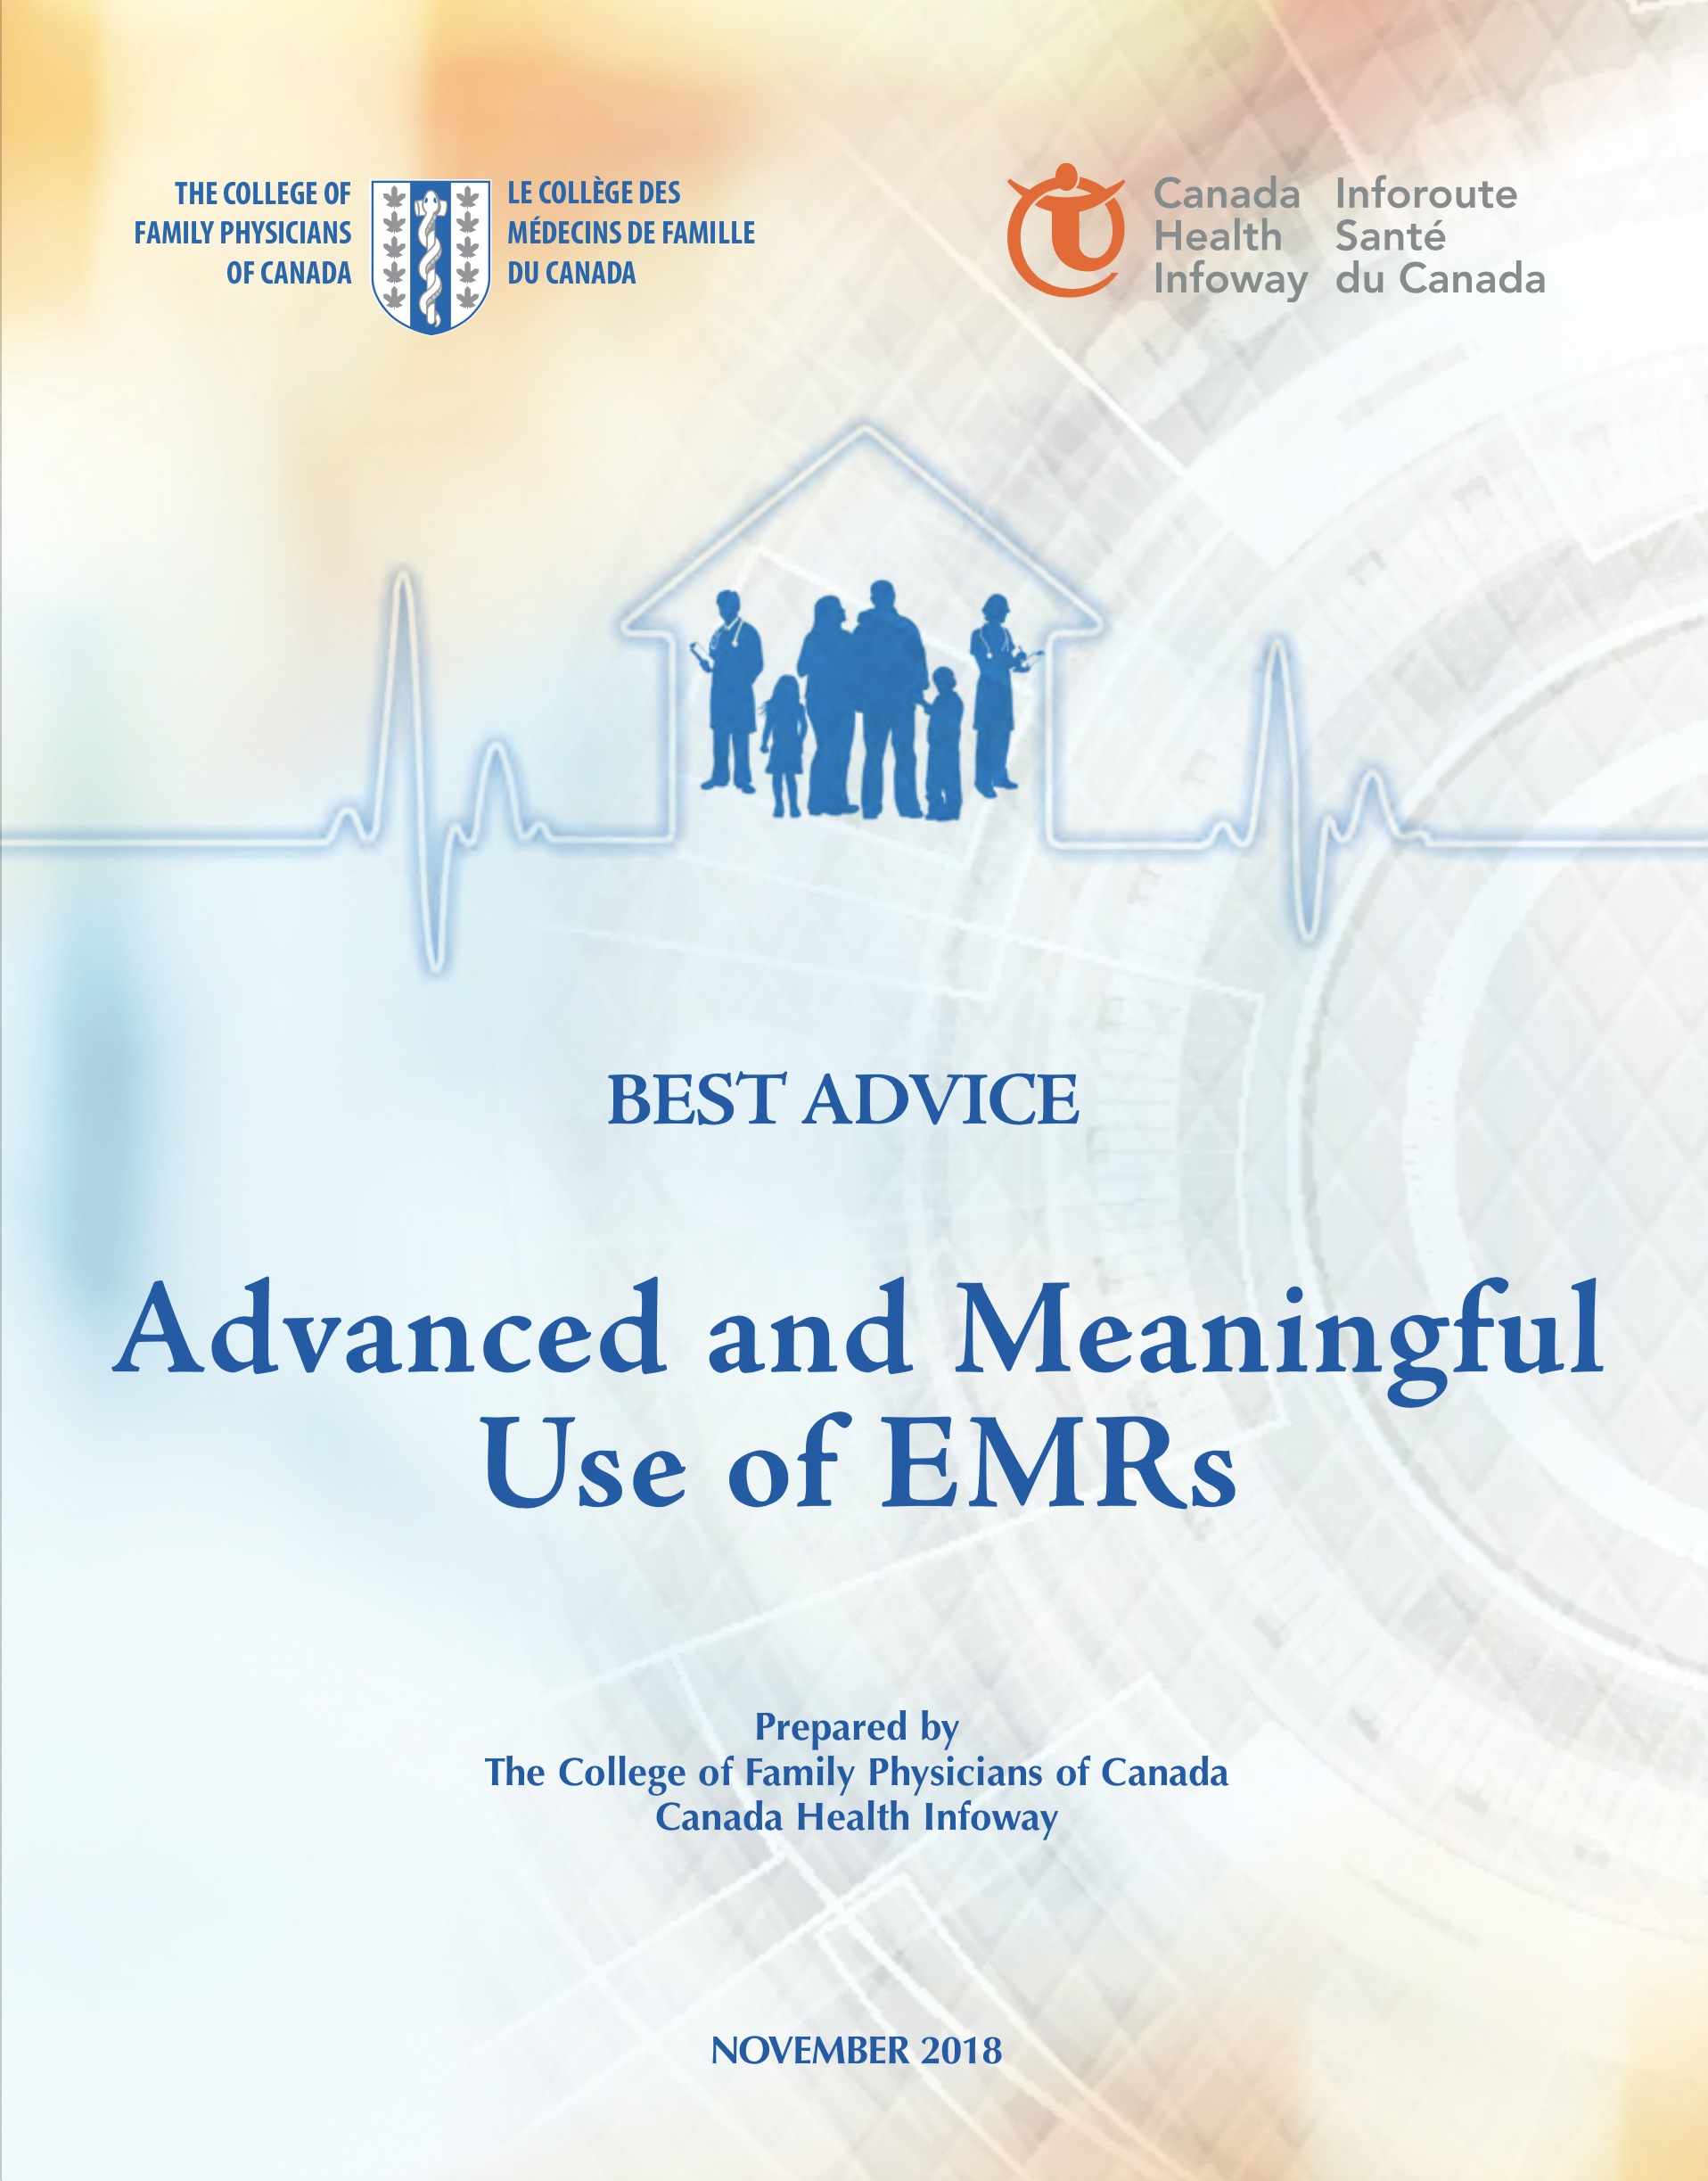 Best Advice Guide: Advanced and Meaningful Use of EMRs